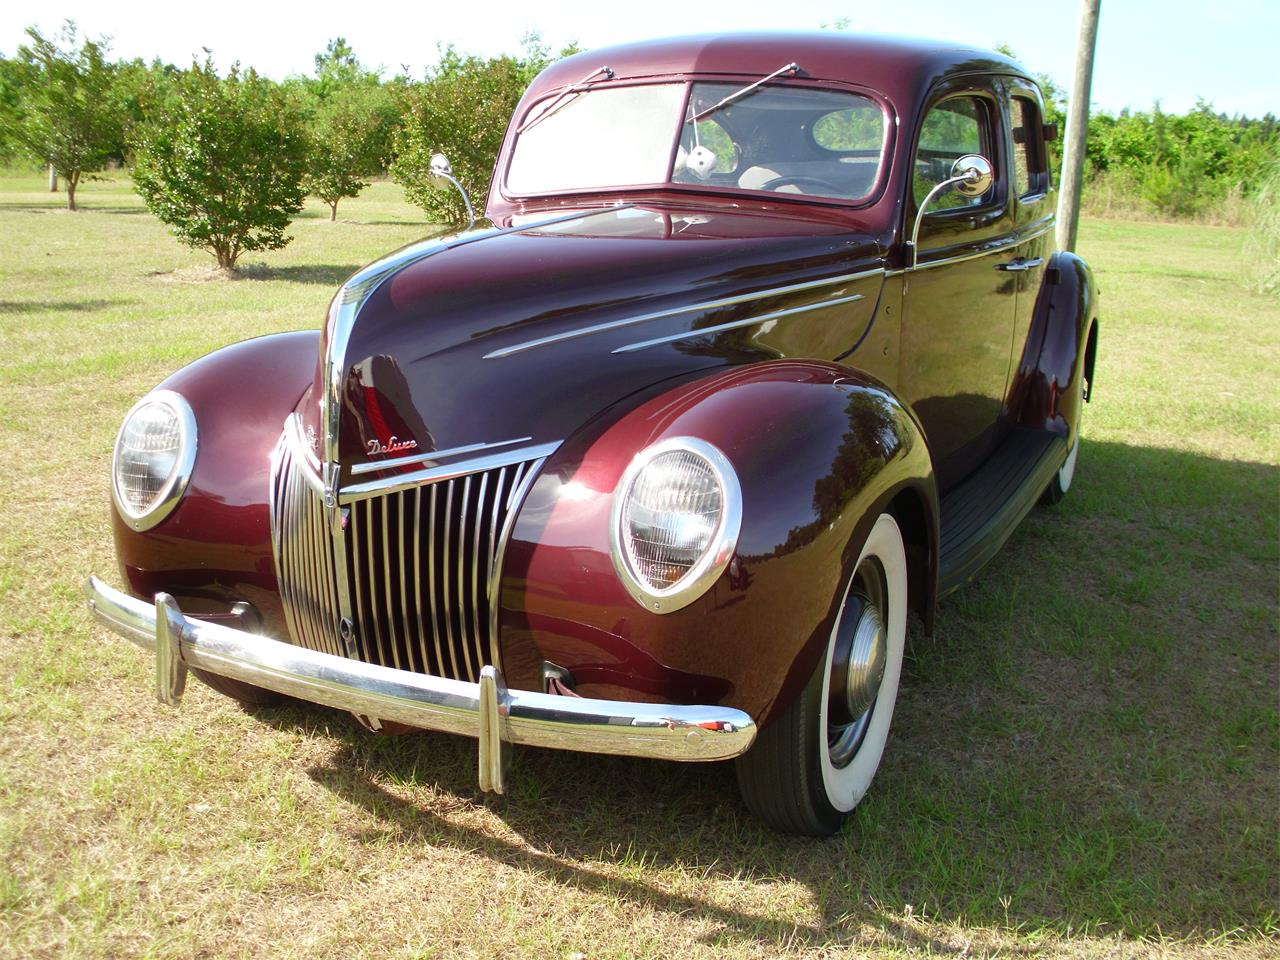 Large Picture of '39 Fordor Deluxe located in Georgia - $25,000.00 Offered by a Private Seller - ETZZ